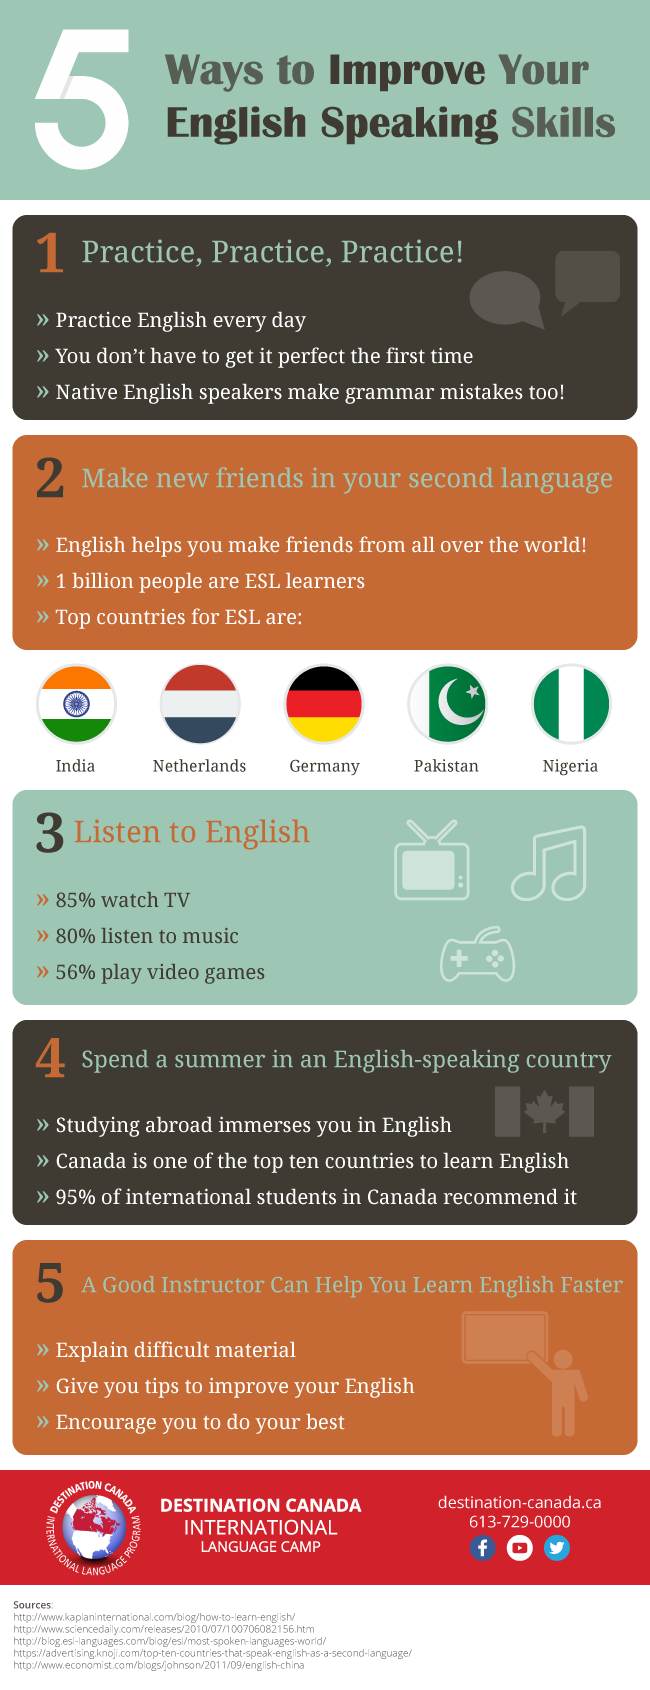 [Infographic]: 5 Ways to Improve Your English Speaking Skills